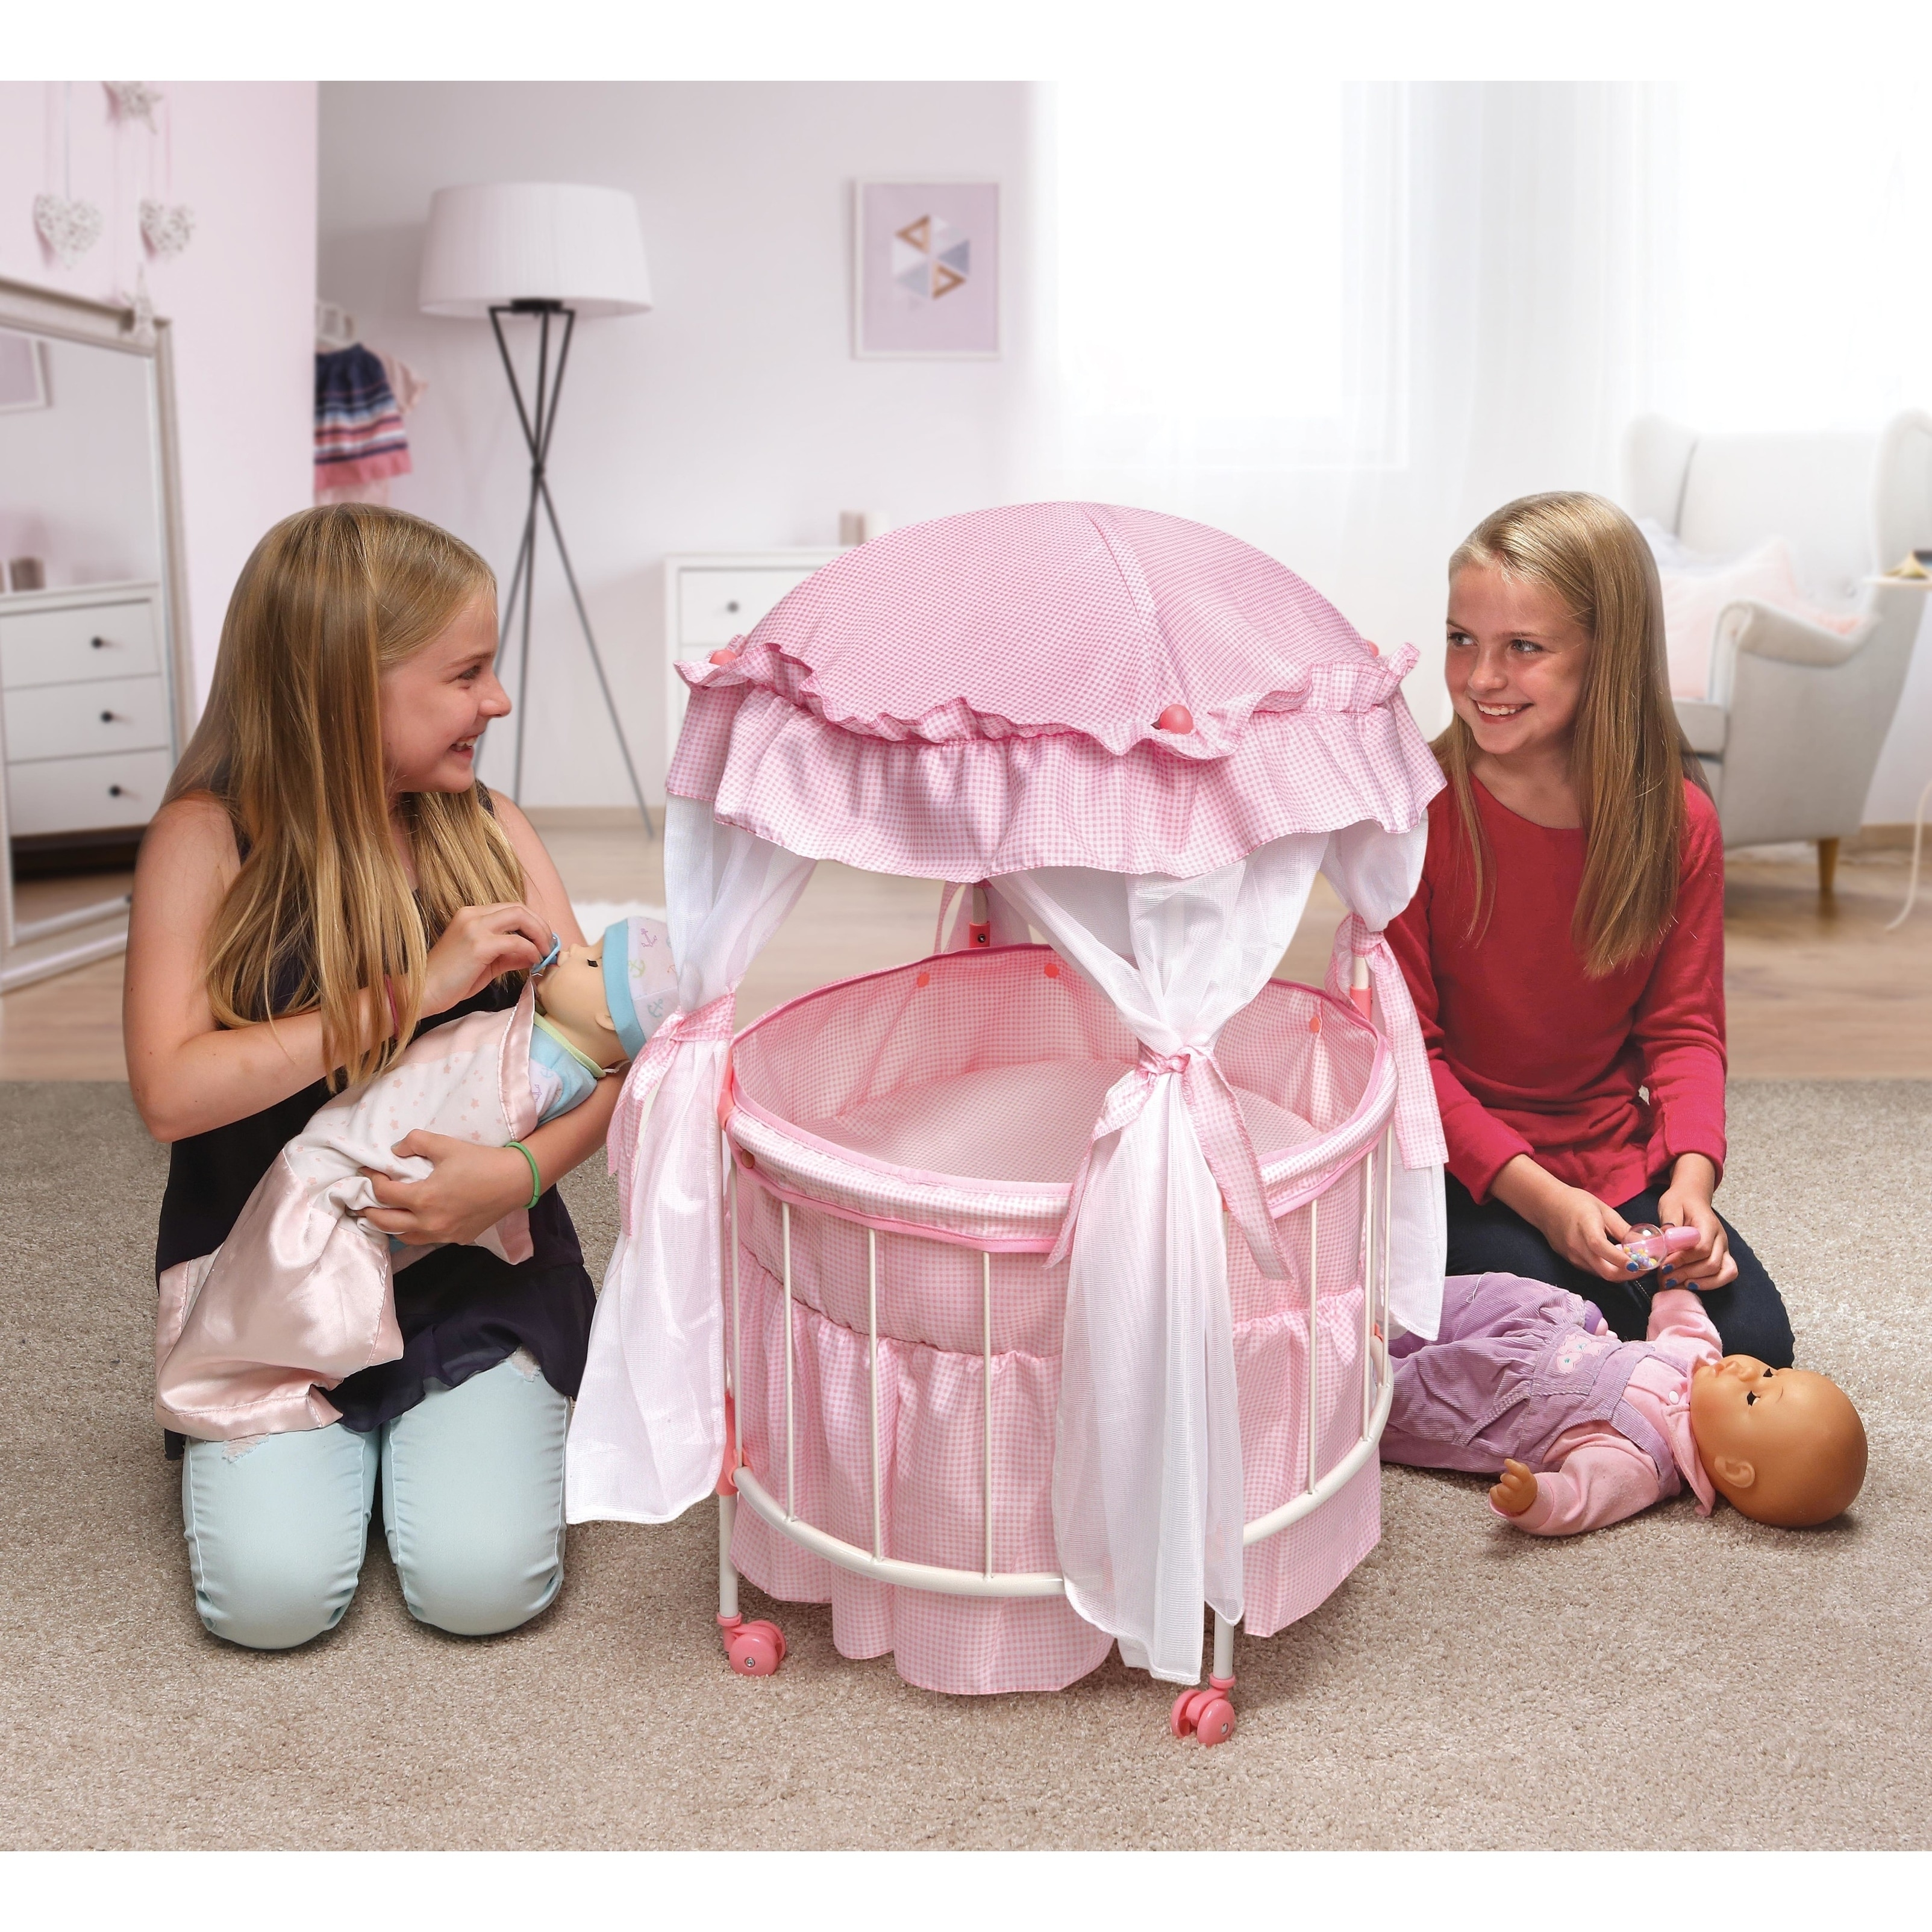 Baby Doll Crib White Pink With Baskets Bedding Mobile Fabric Canopy Bumper